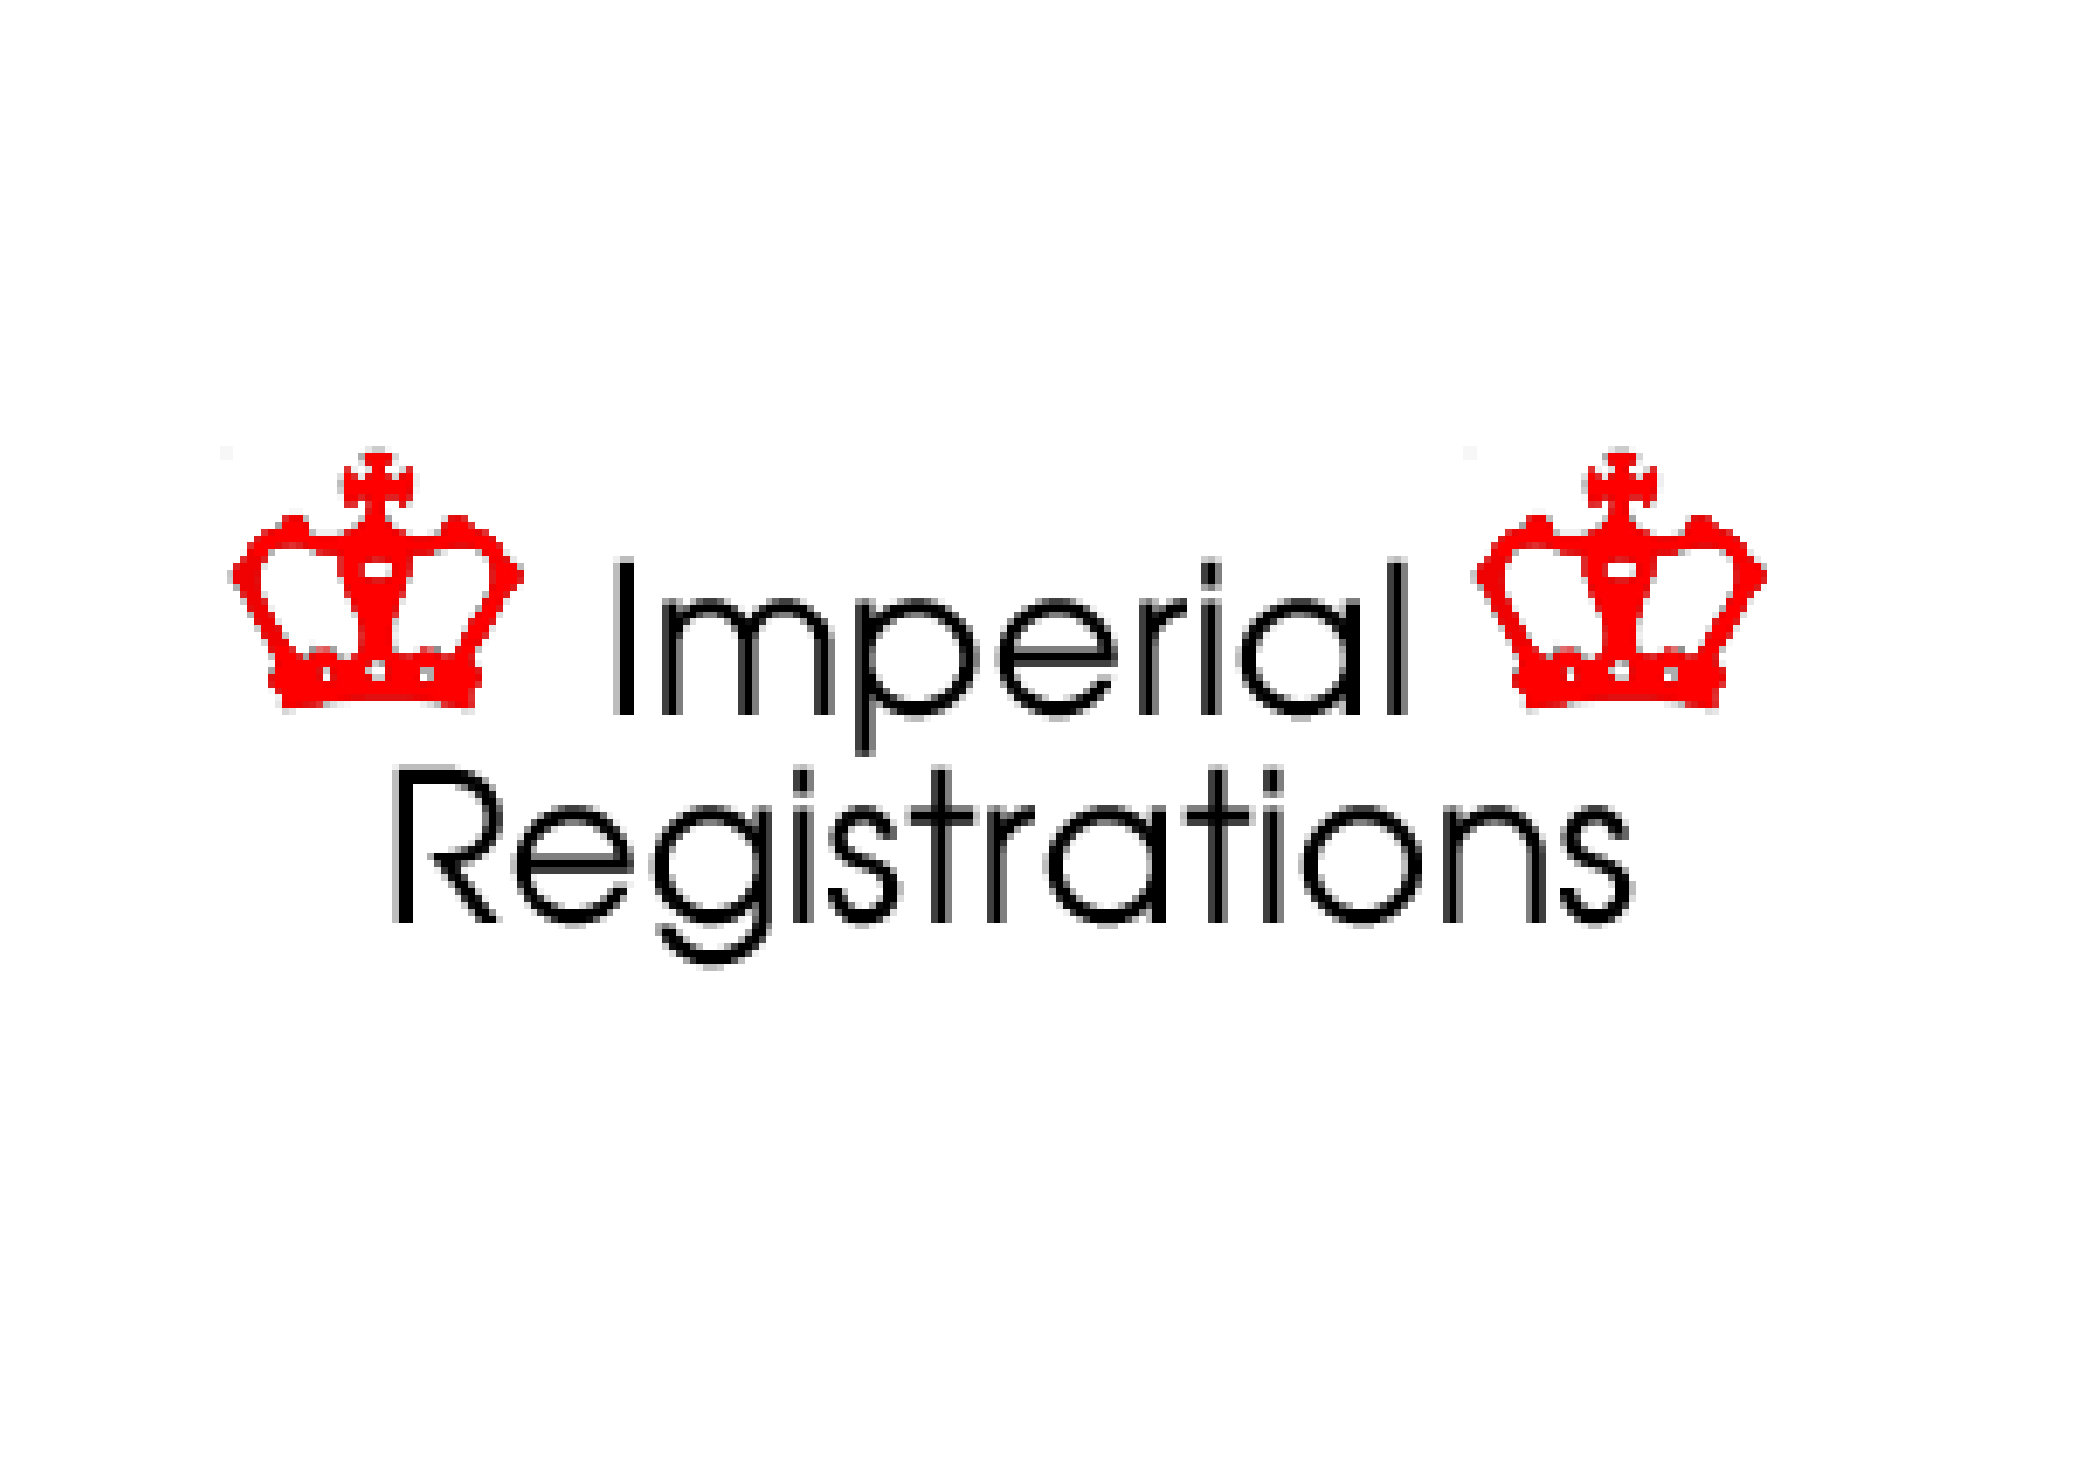 Imperial Registrations